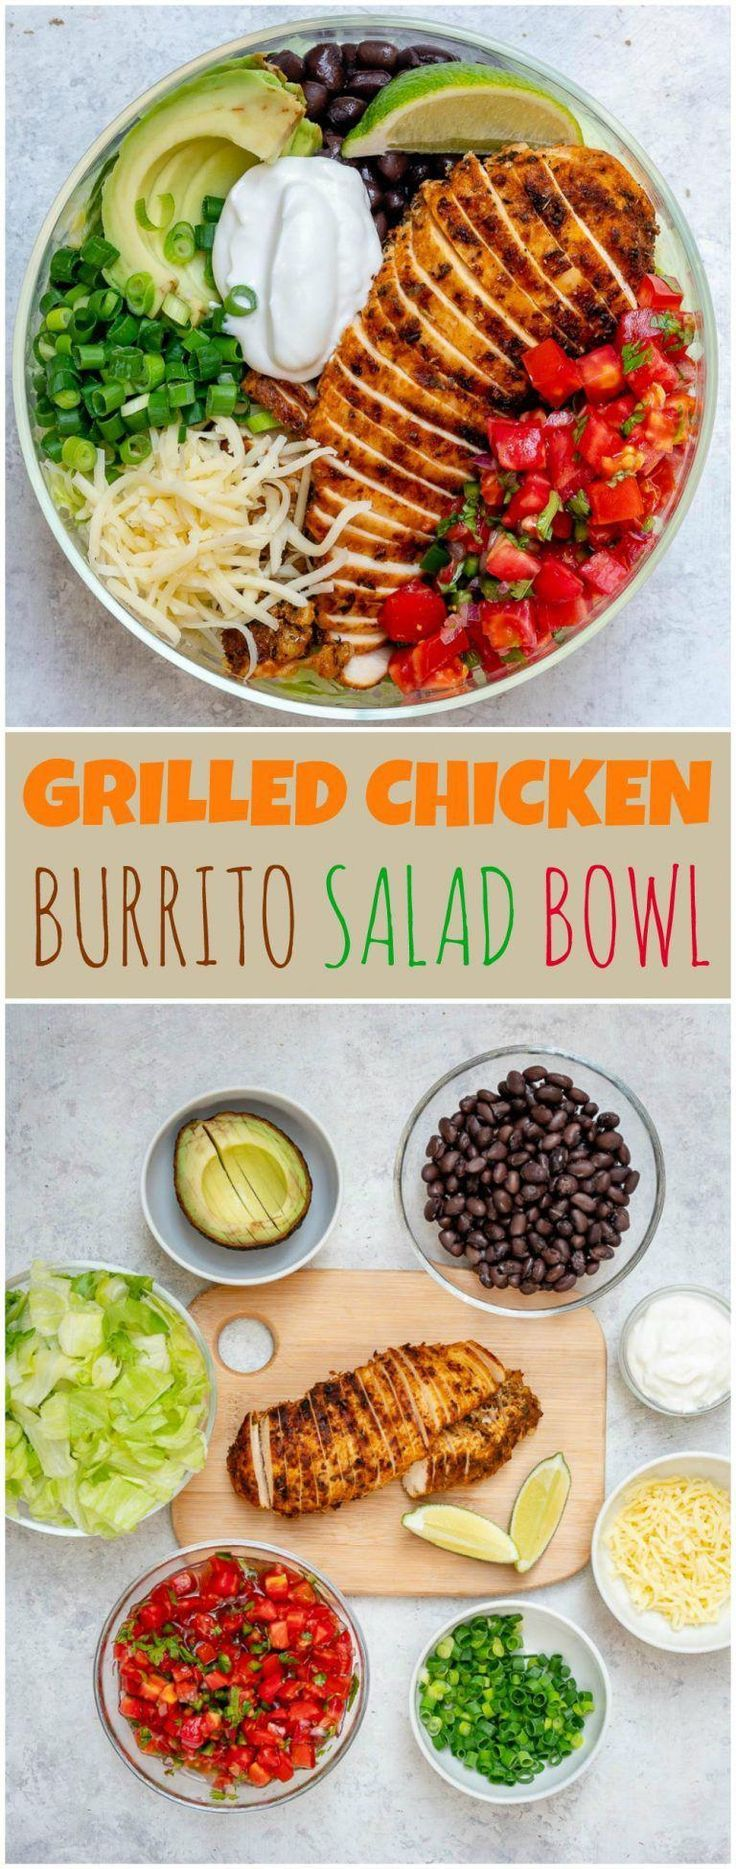 Grilled Chicken Meal Prep Bowls 4 Creative Ways for Clean Eating! | Clean Food C…